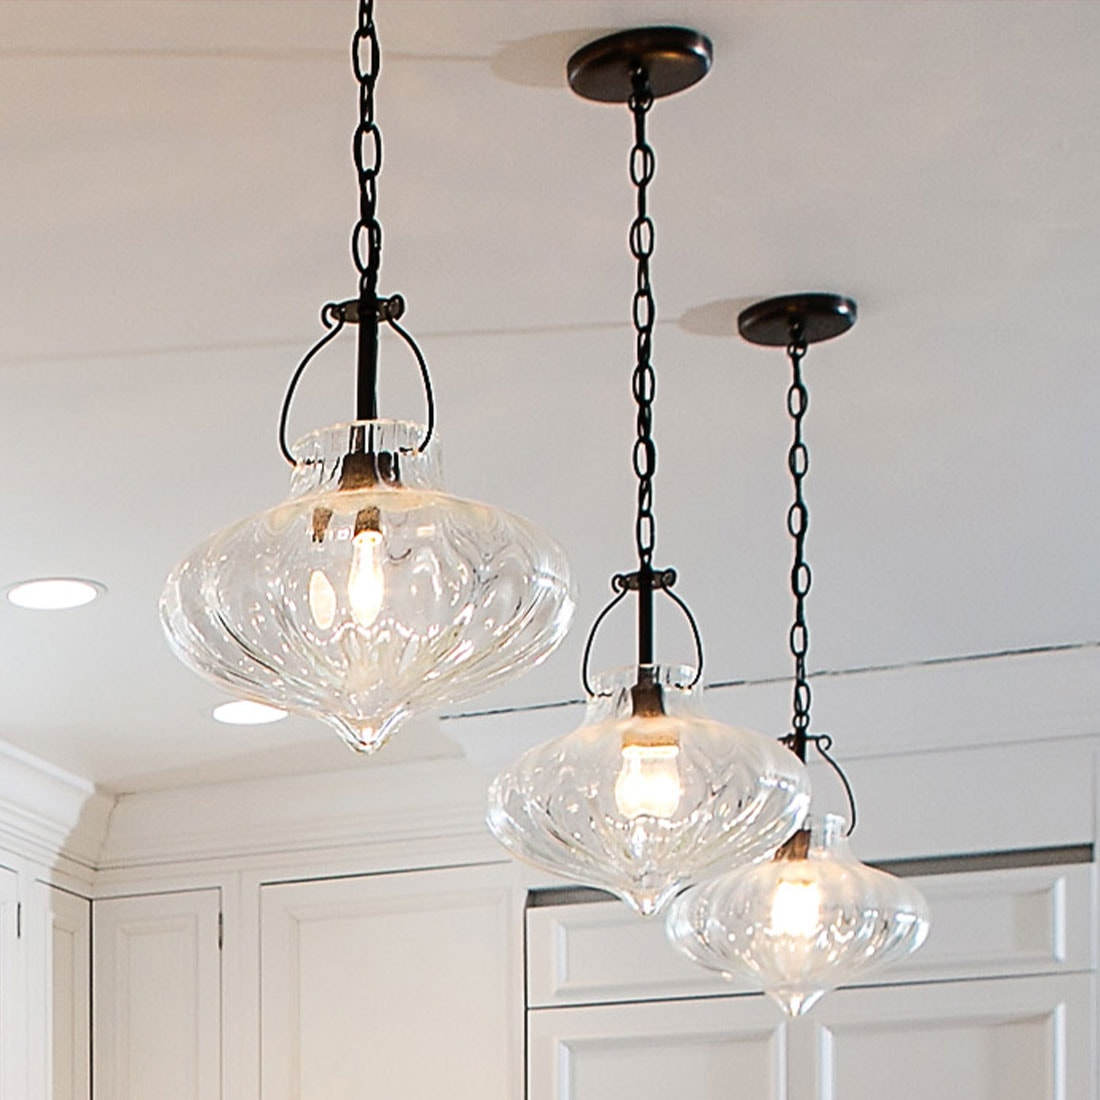 three bulb clear glass pendant lights in renovated kitchen